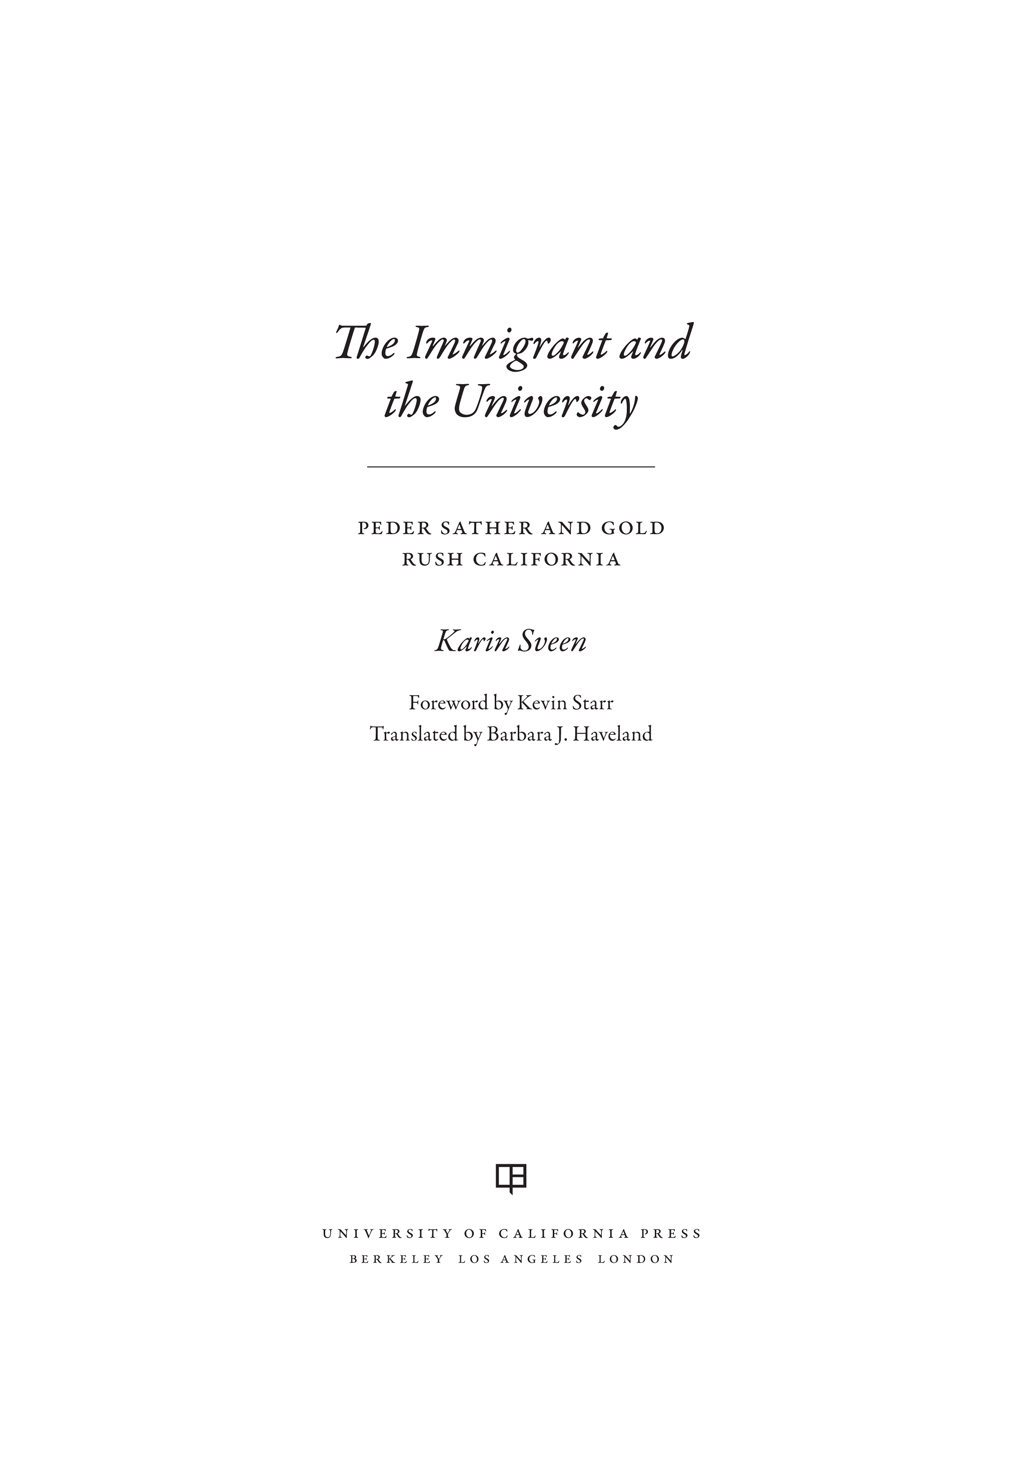 The Immigrant and the University